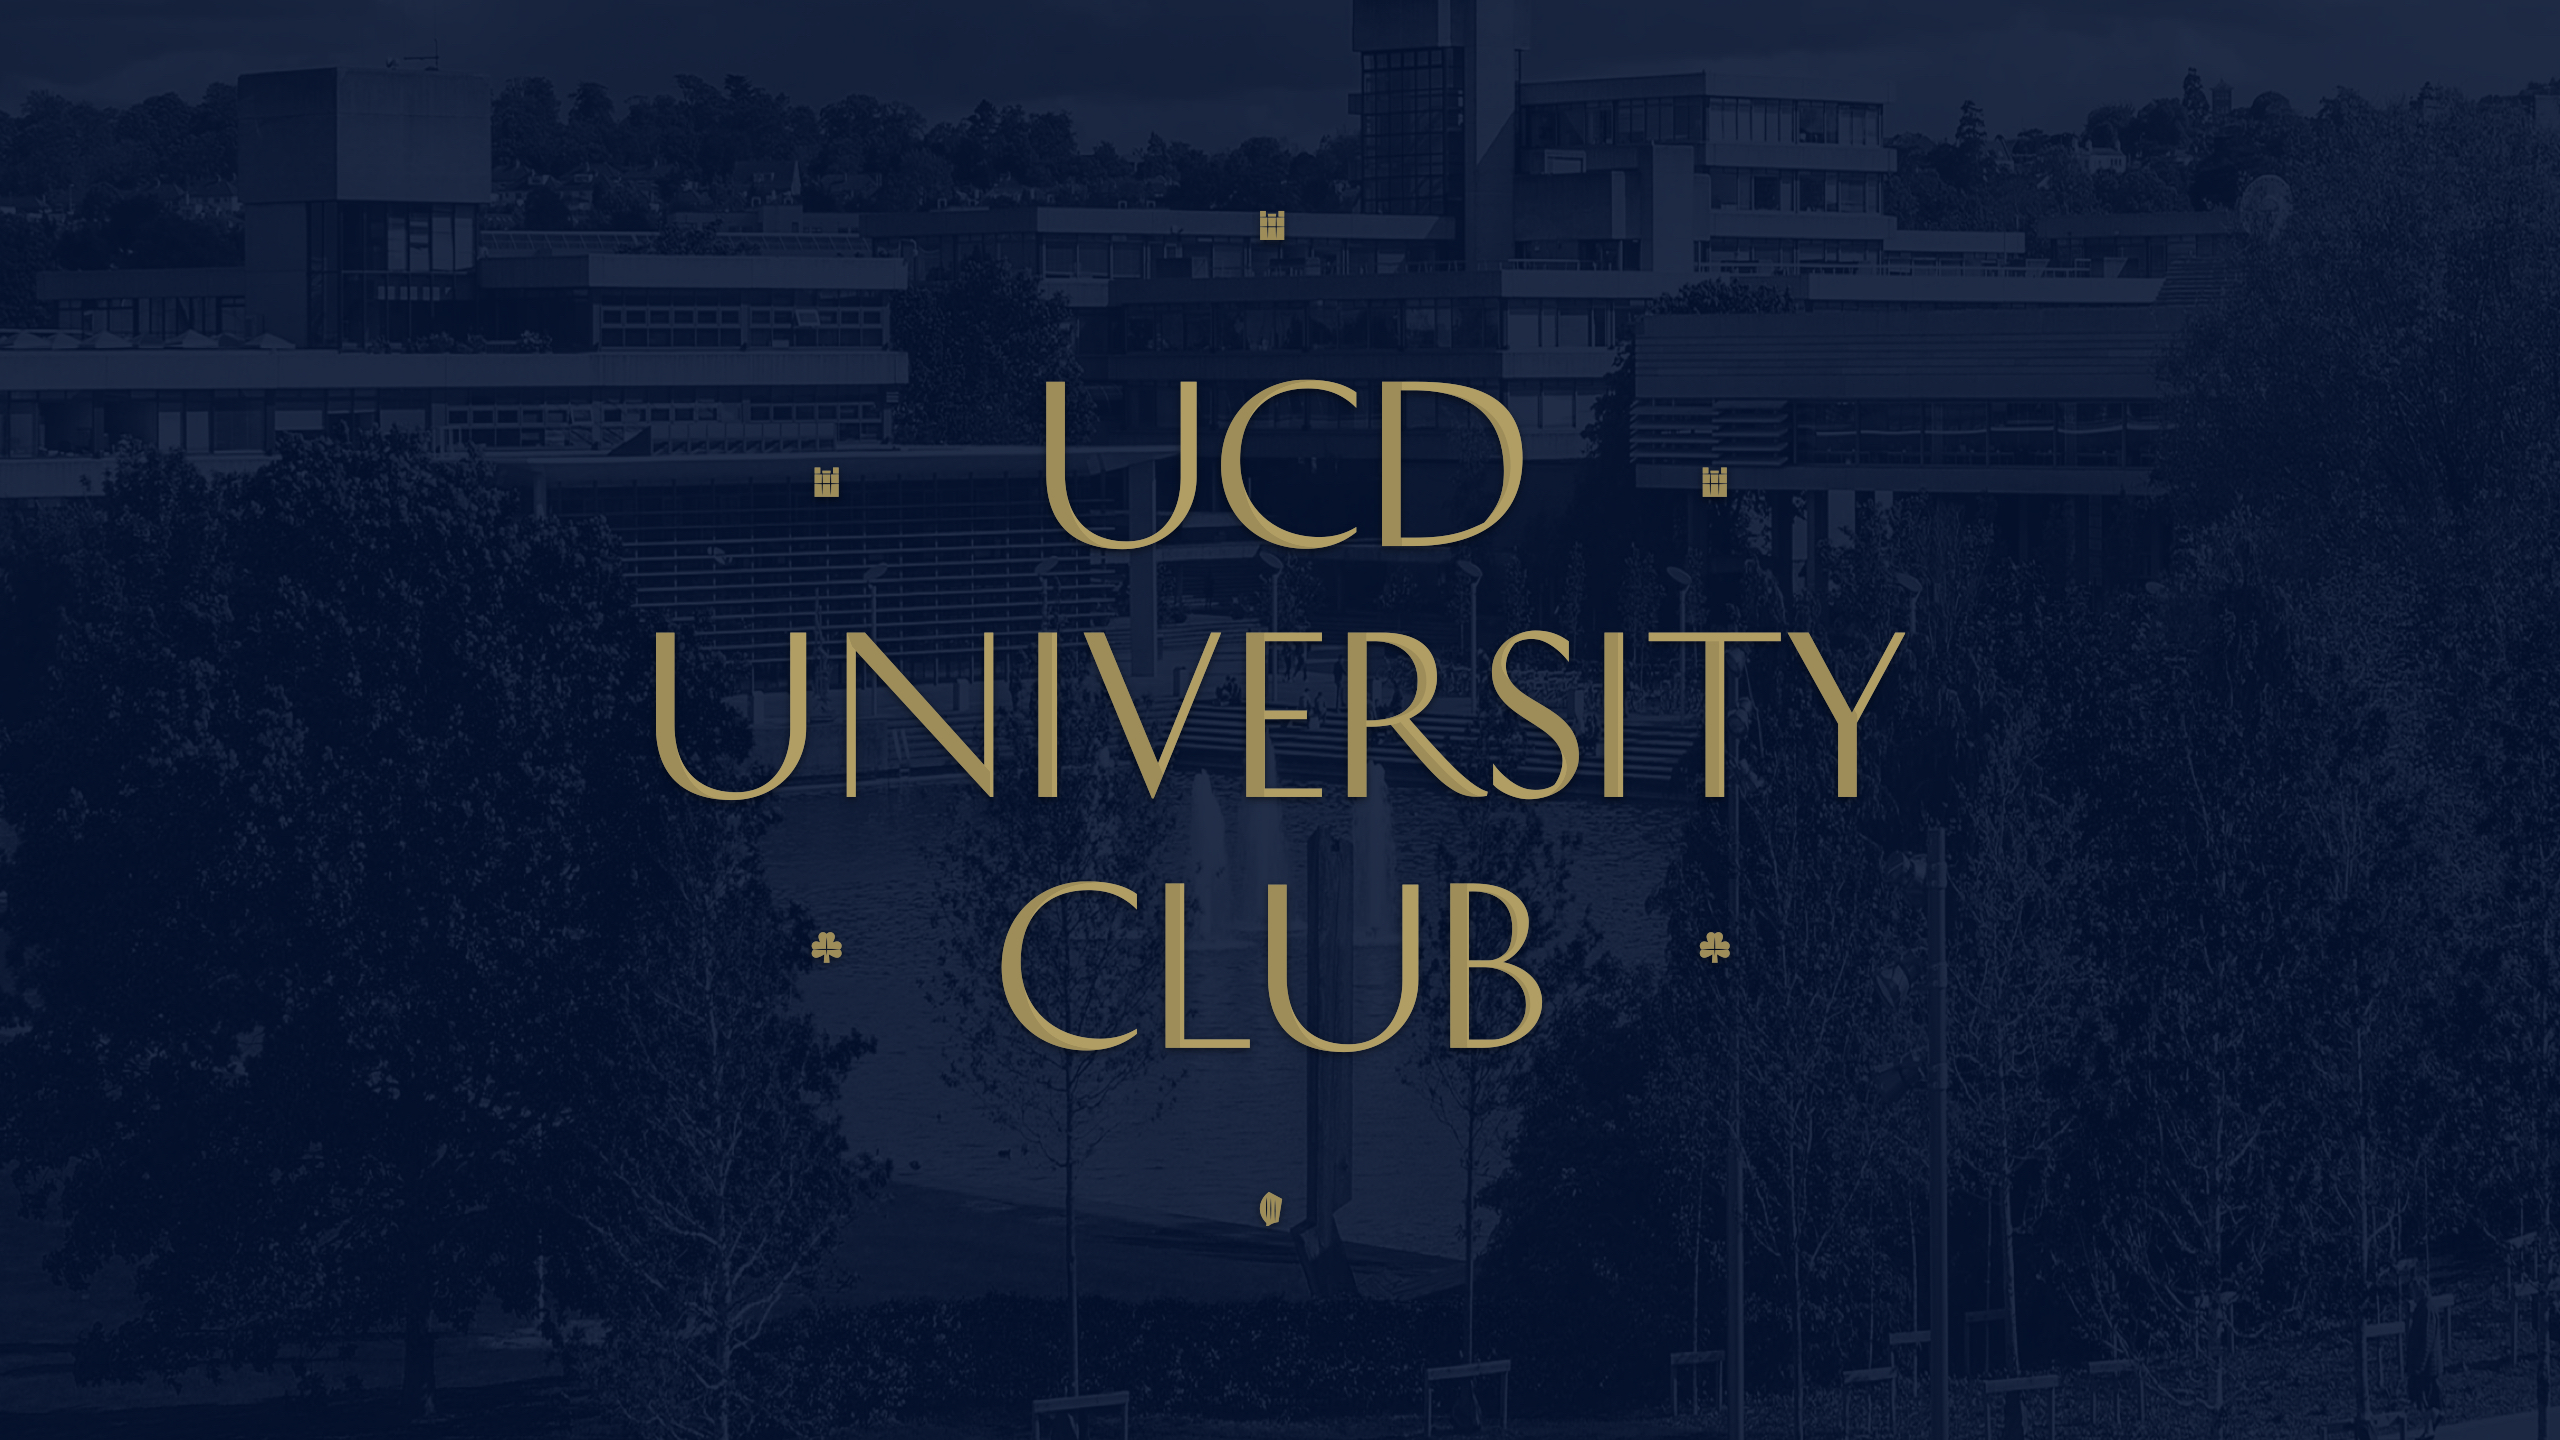 Cover image: UCD University Club